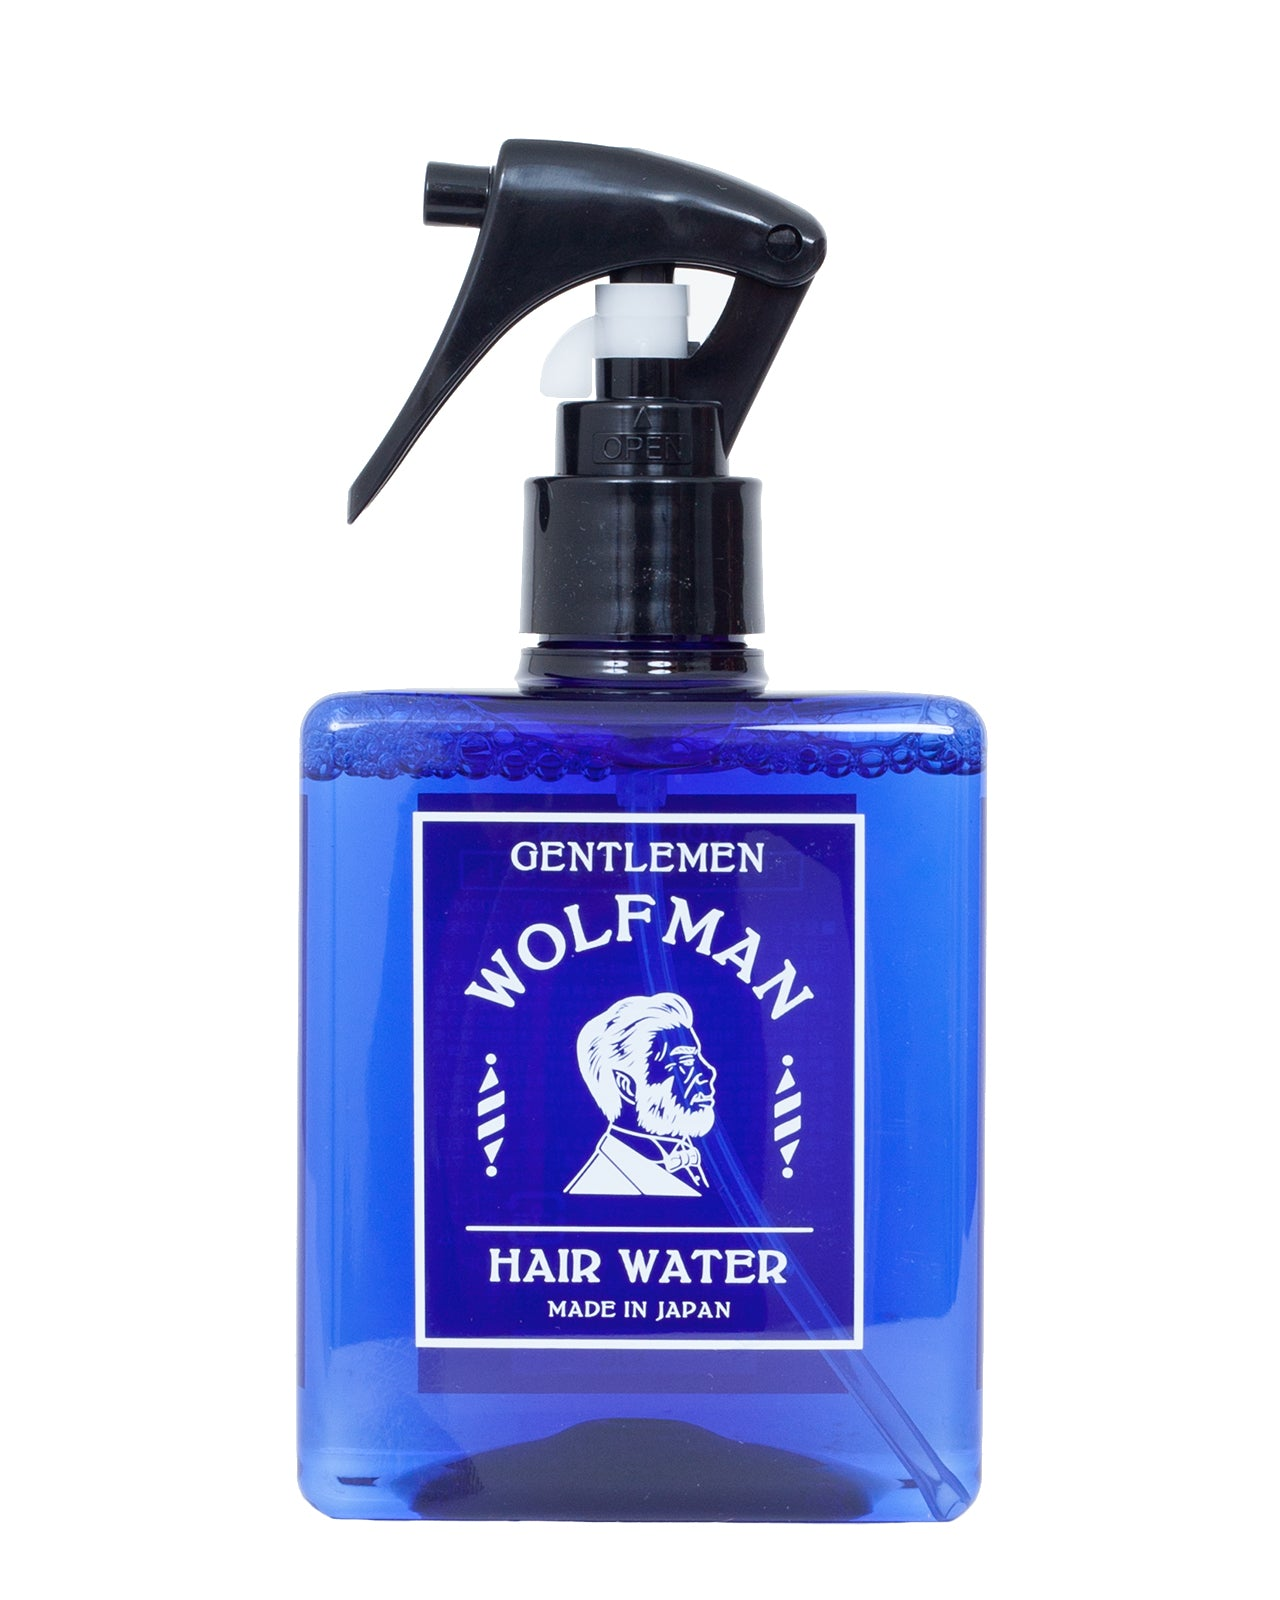 Wolfman x Dresskin Hair Water